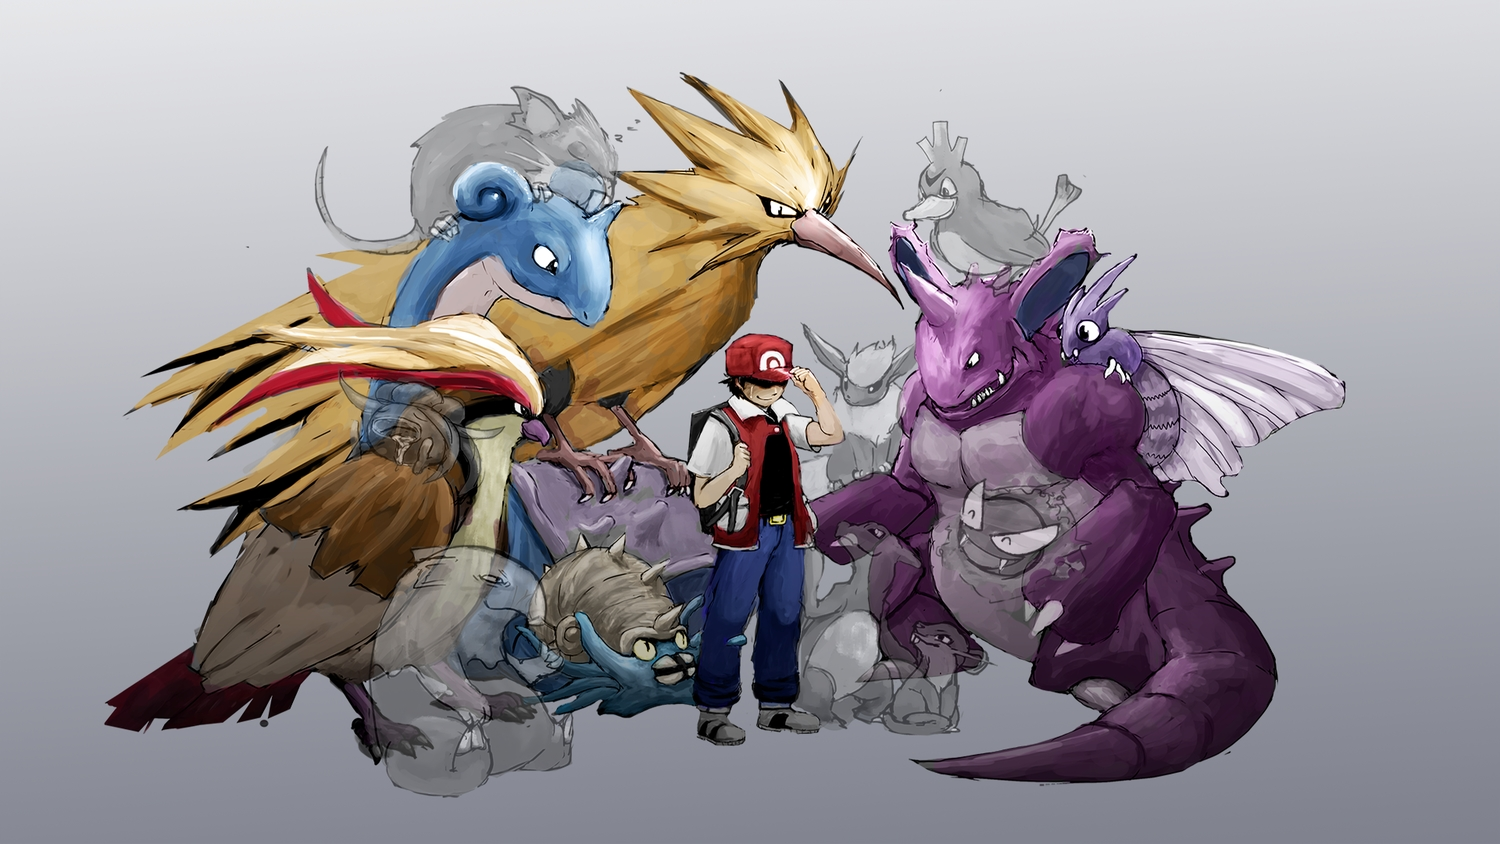 all_male charmeleon crying dafuq-izdis-schitt drowzee farfetch'd flareon gastly gloom gray group hat lapras male nidoking omastar pidgeot pokemon raticate rattata red_(pokemon) tears venomoth zapdos